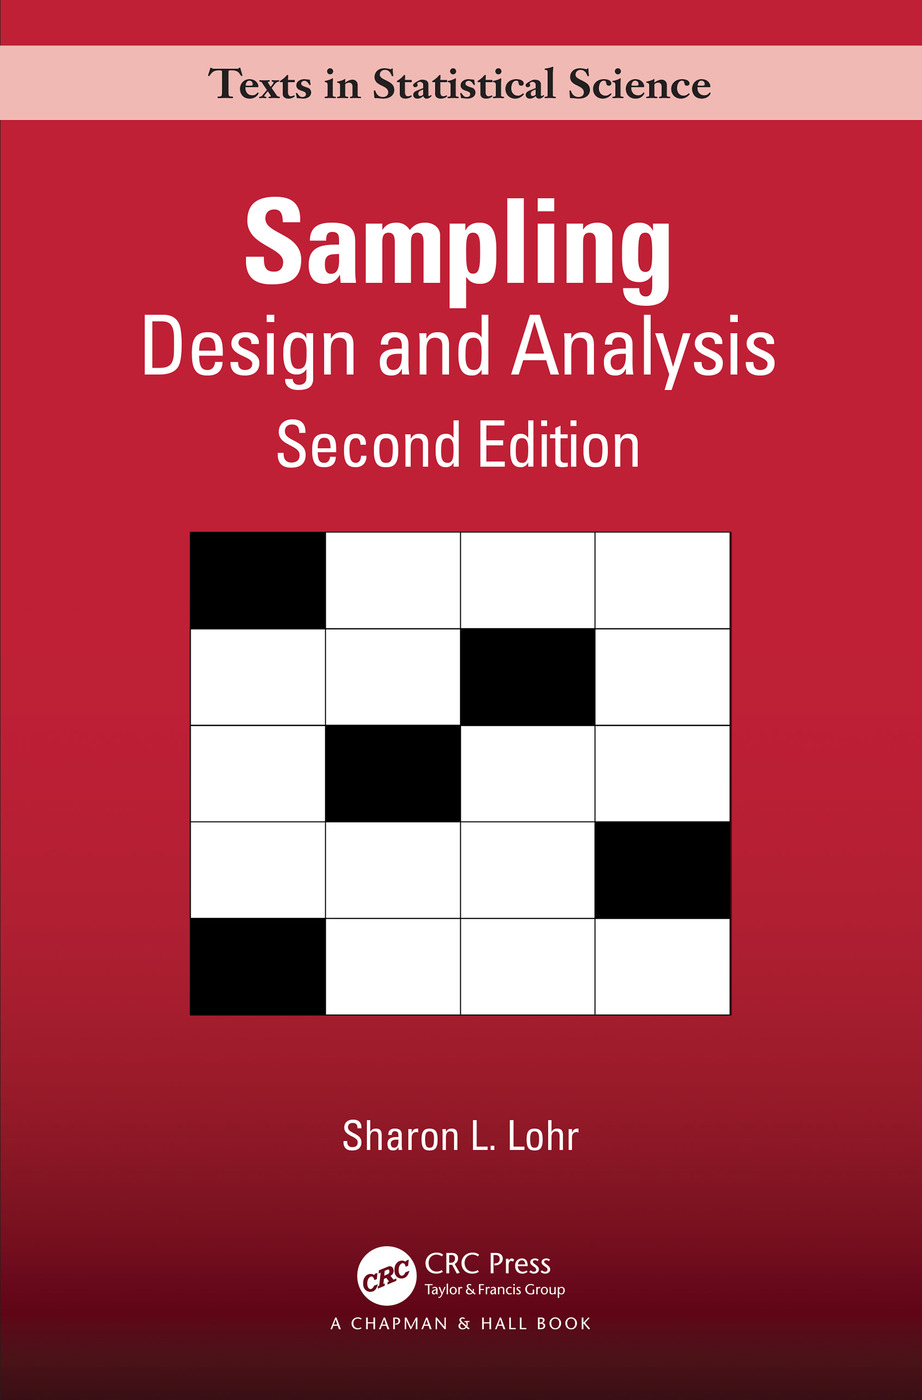 Sampling: Design and Analysis book cover